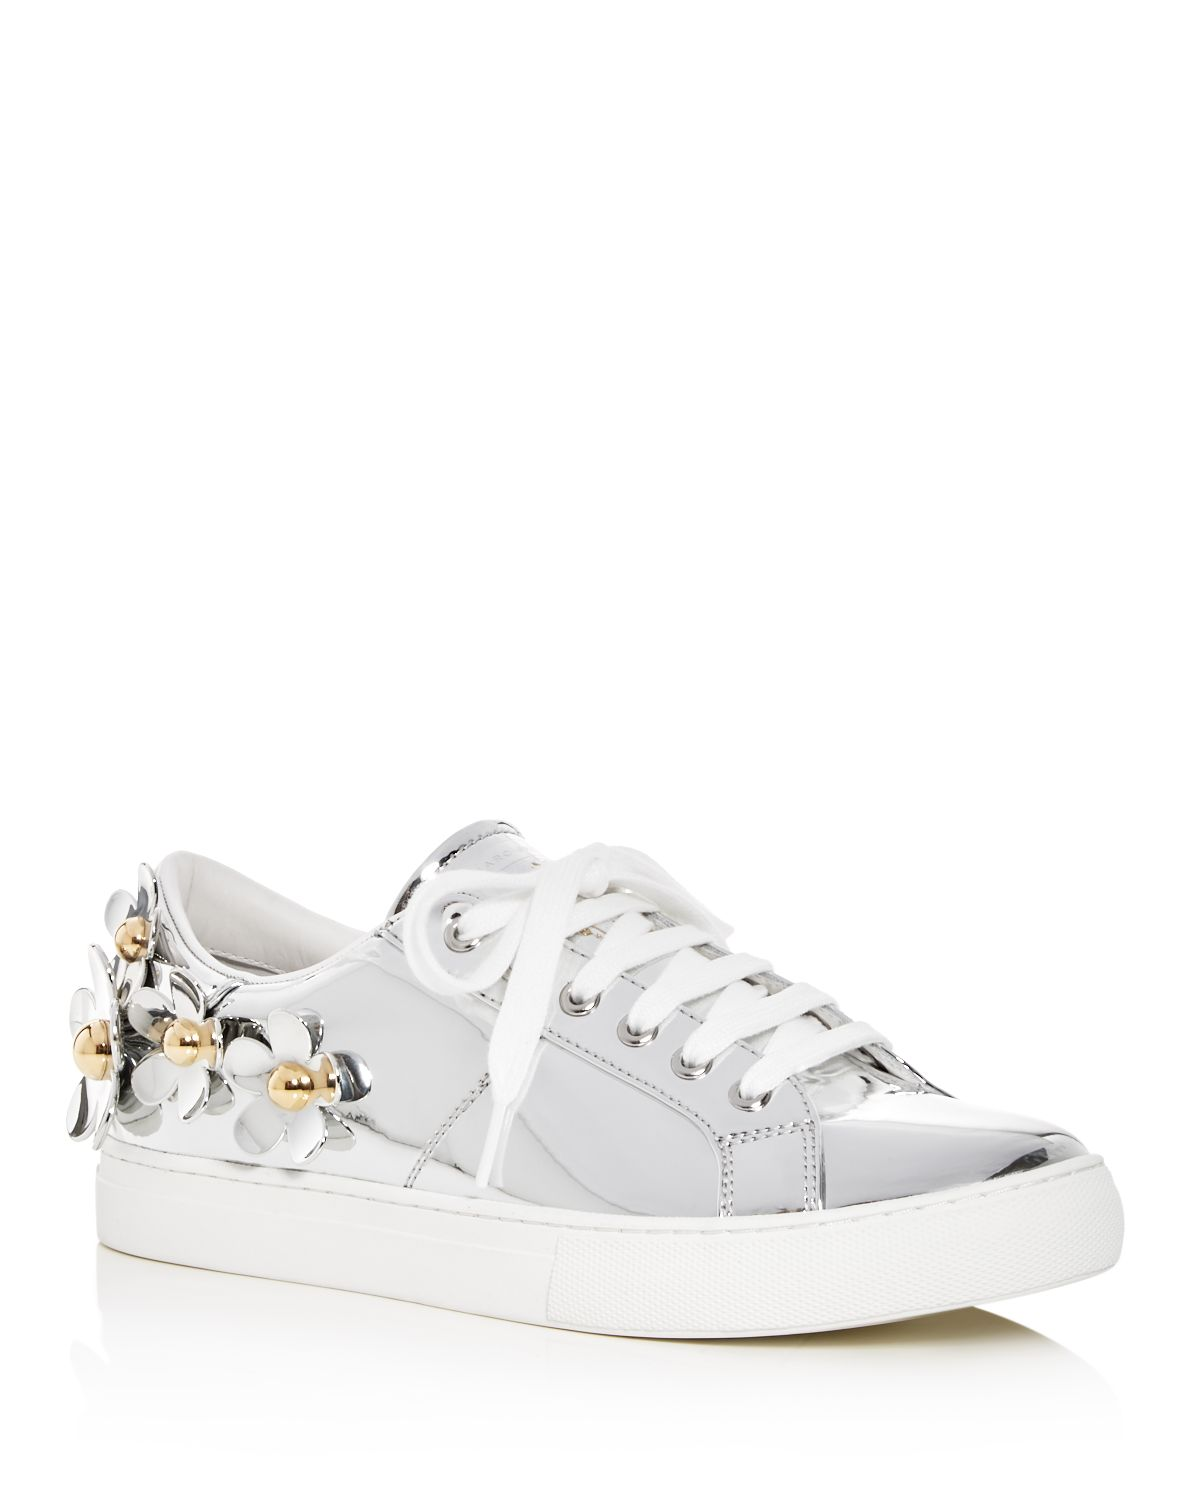 Women's Daisy Embellished Patent Leather Lace Up Sneakers by Marc Jacobs